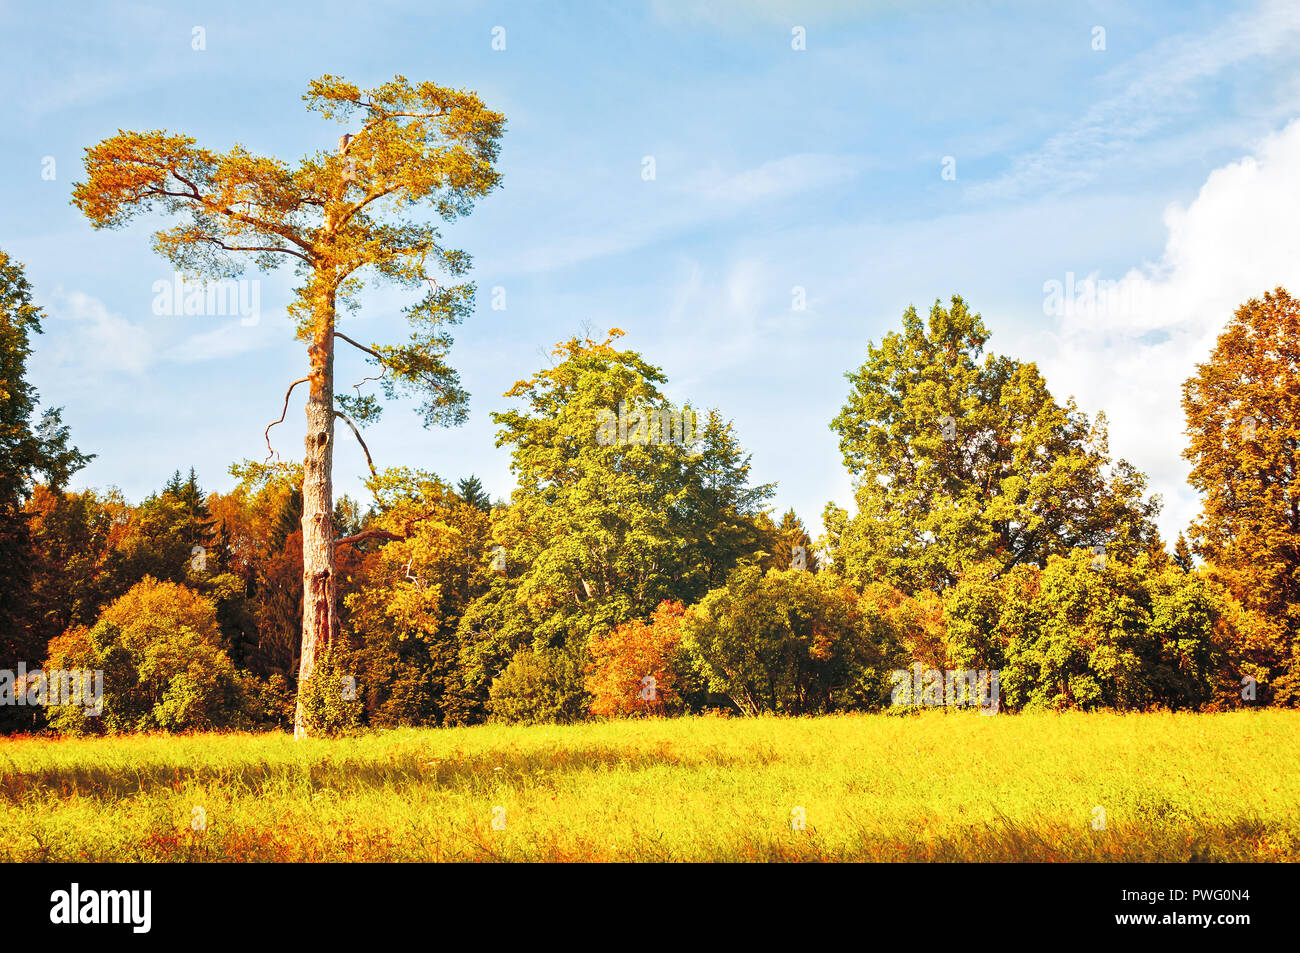 Autumn October landscape - colorful autumn forest with deciduous trees in sunny weather. Autumn landscape in vintage tones - Stock Image